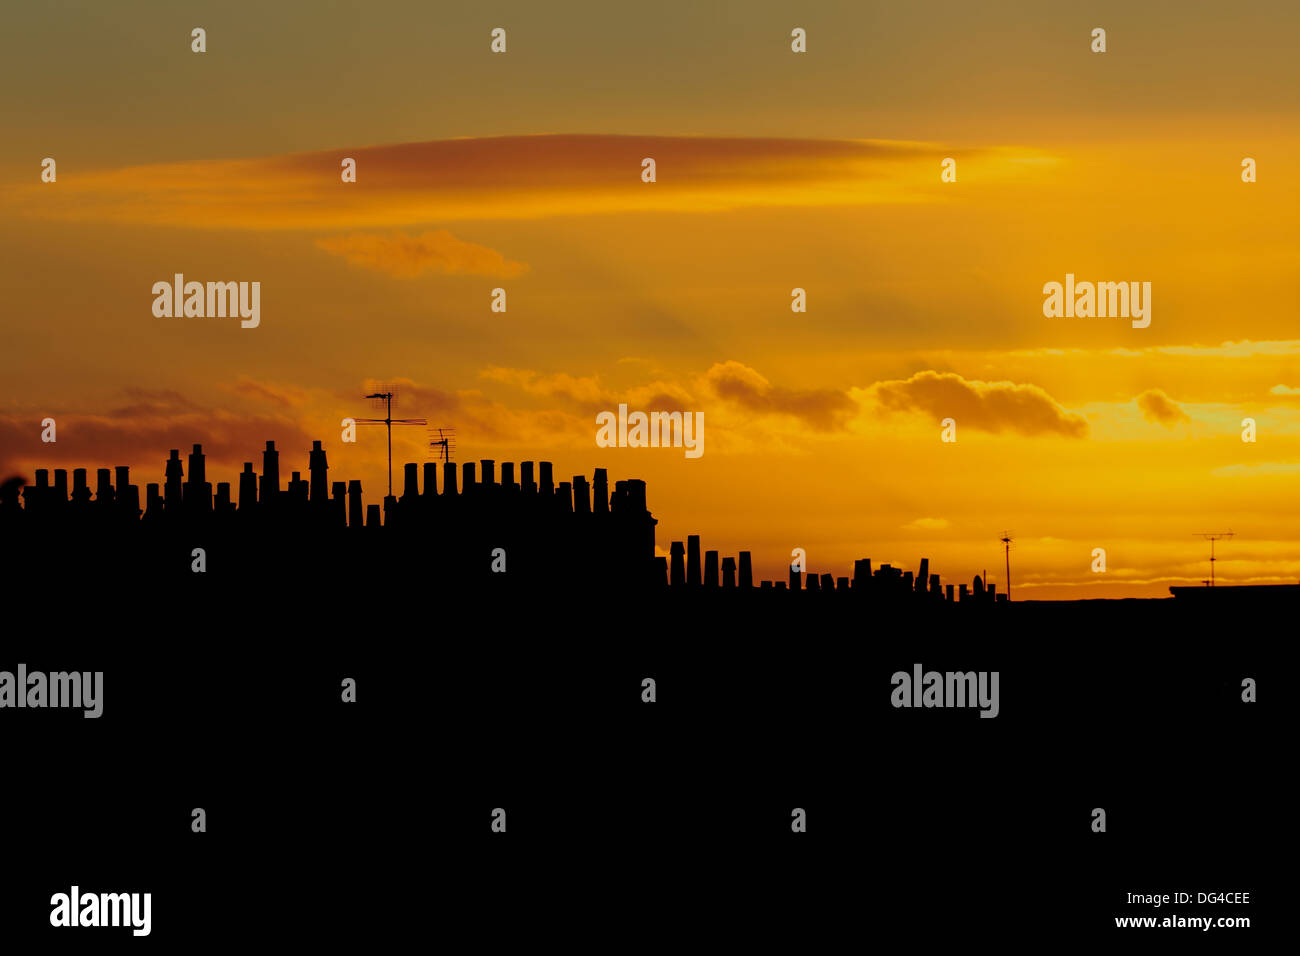 Silhouette of chimney pots at sunset, Scotland, UK - Stock Image